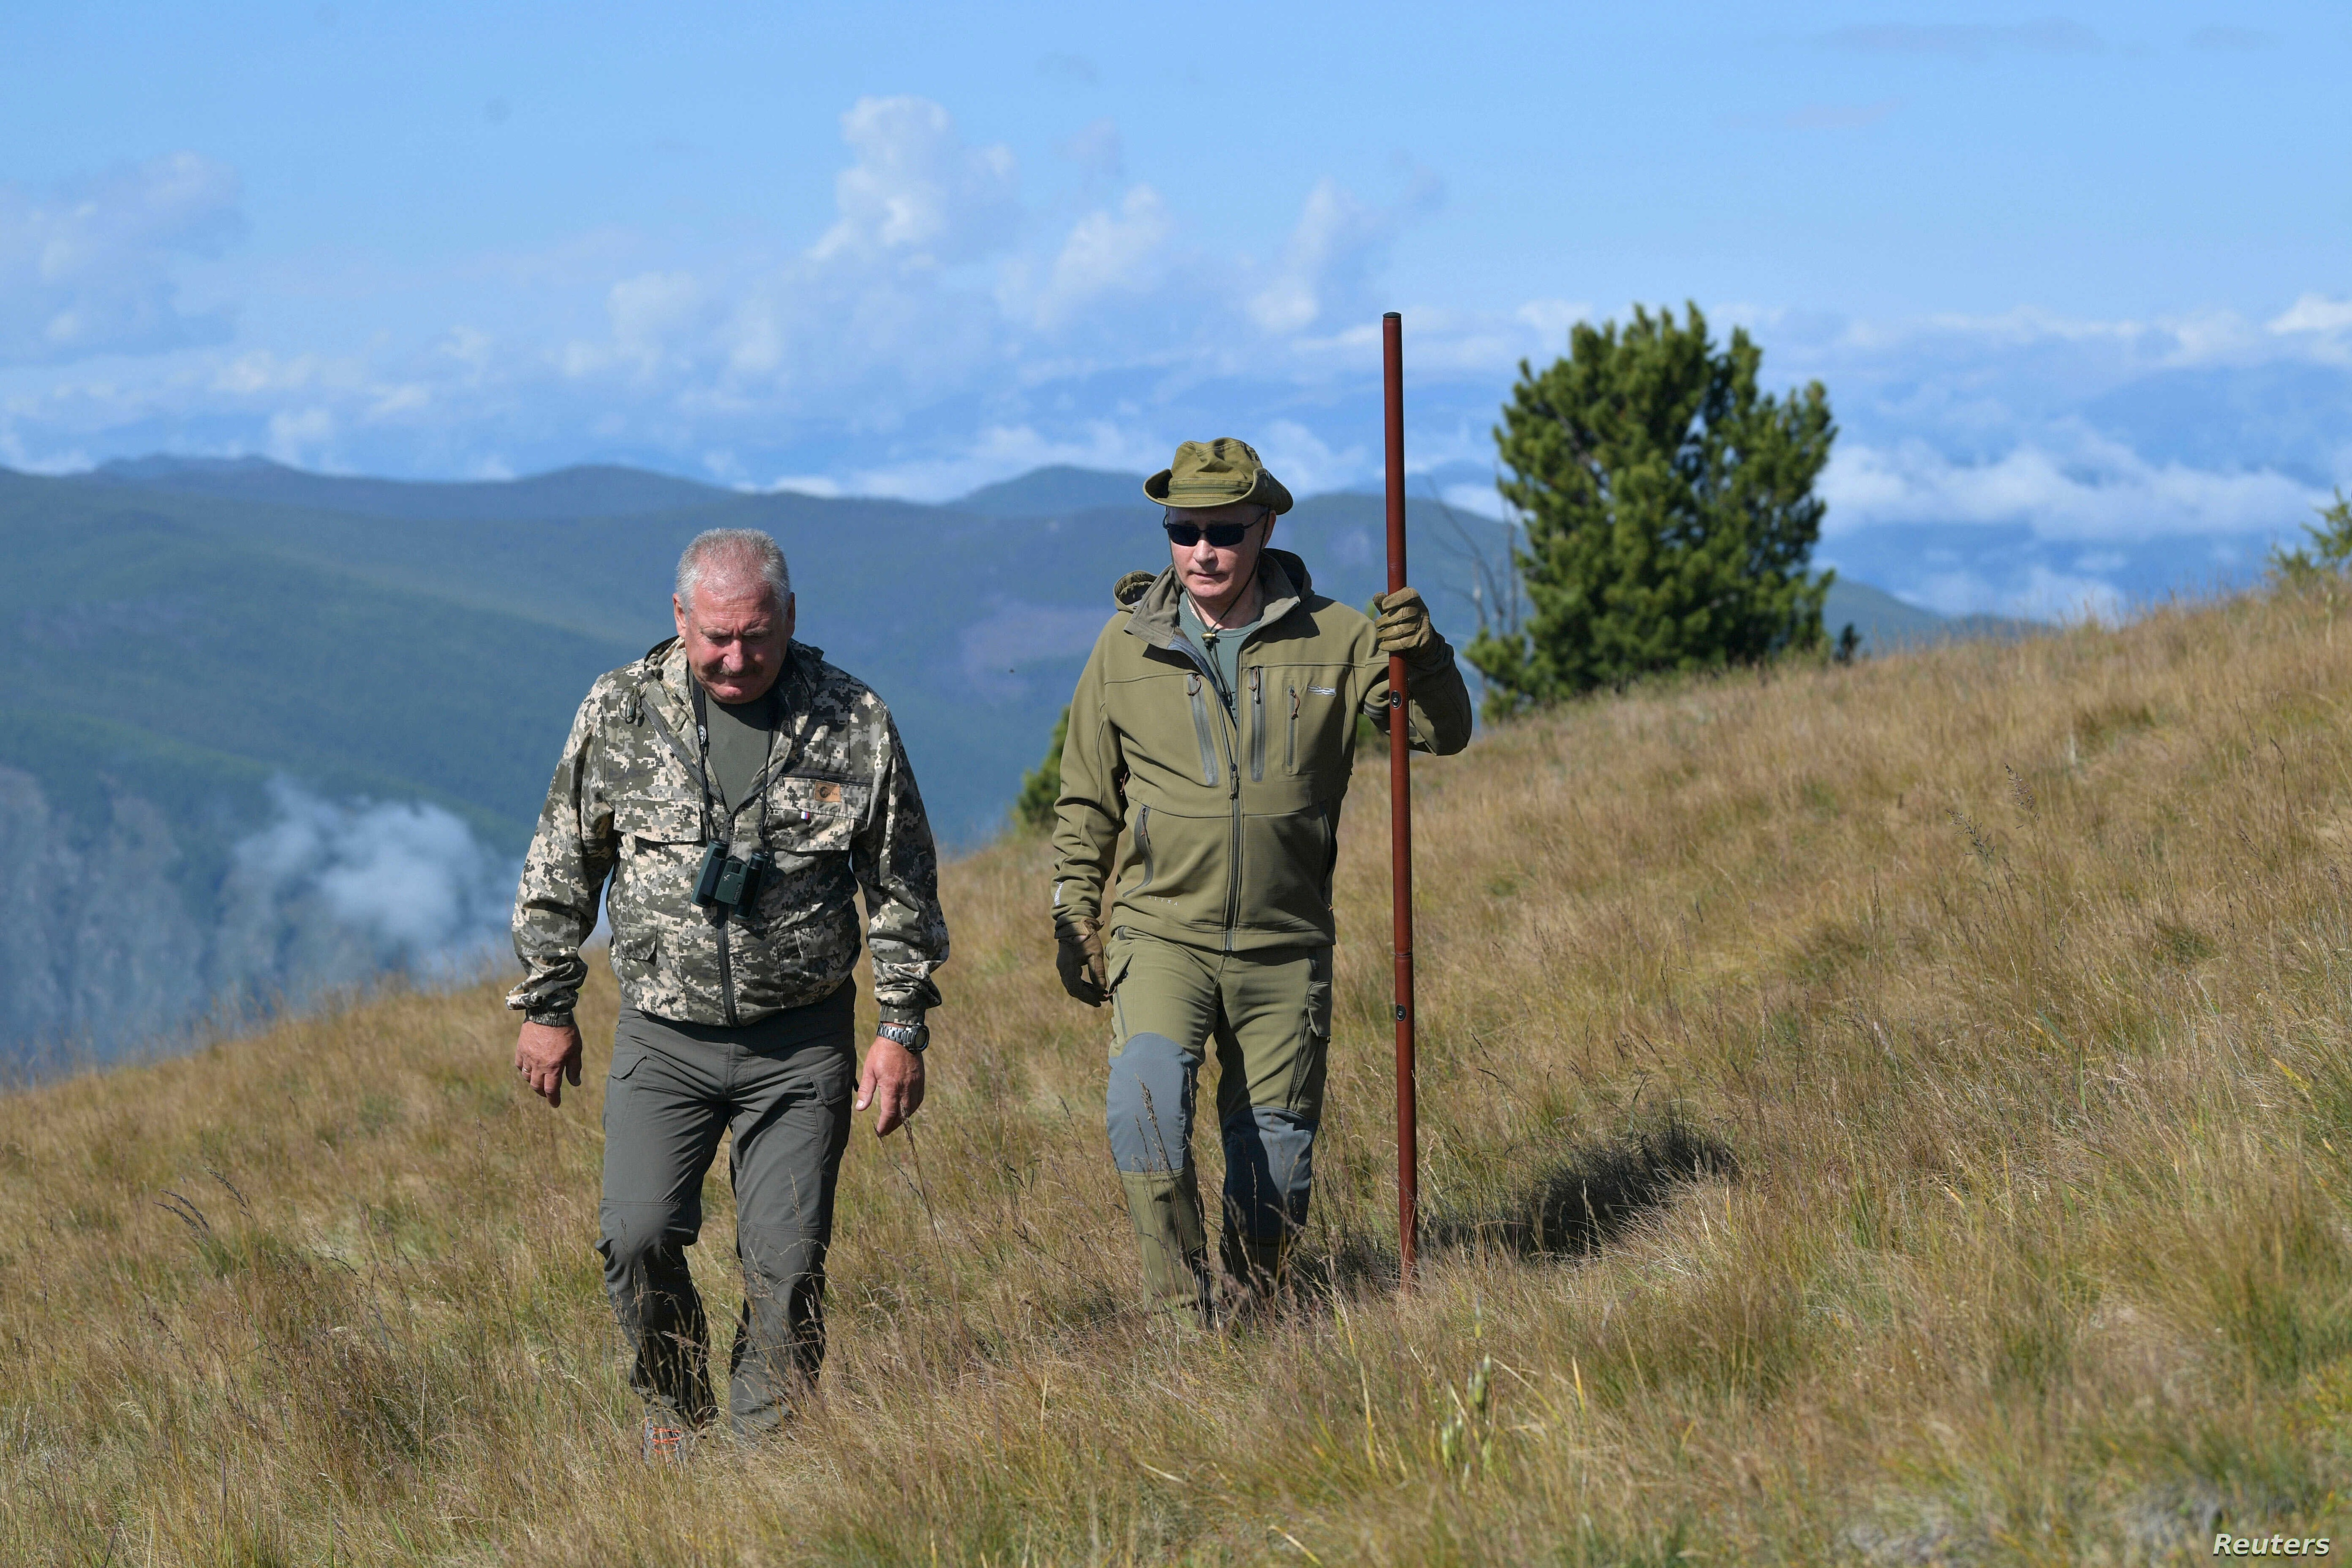 Putin Takes Birthday Hike In Siberian Mountains Voice Of America English